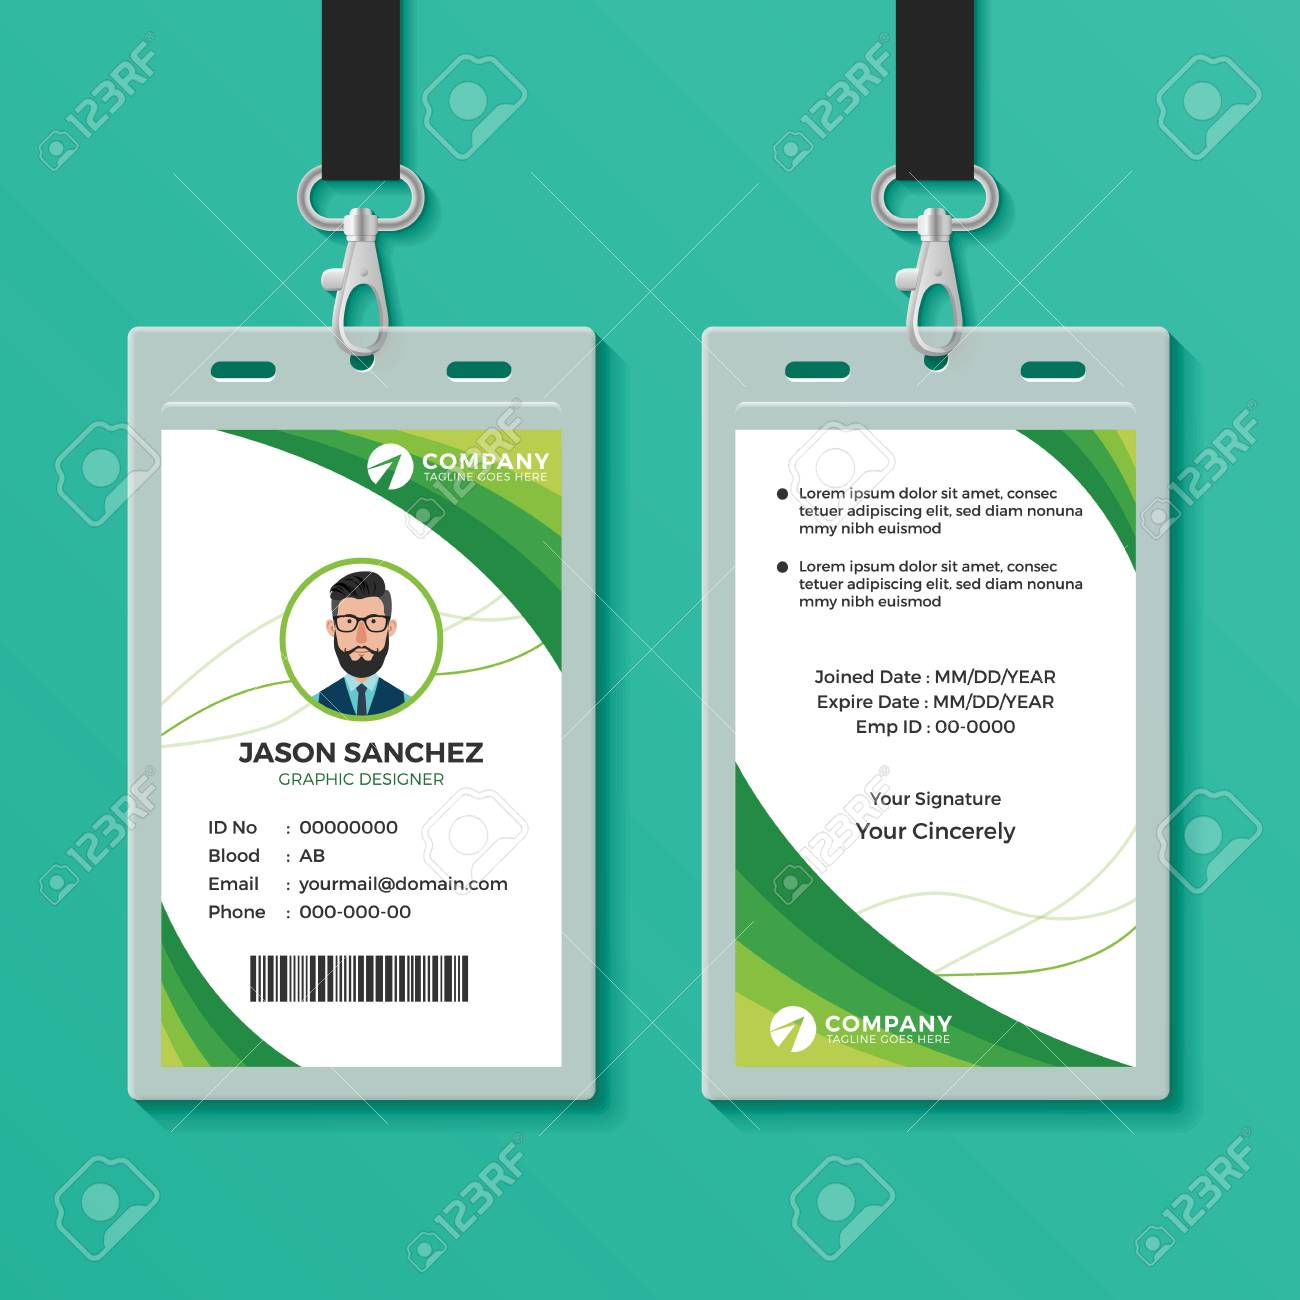 Green Graphic ID Card Design Template - 123982163